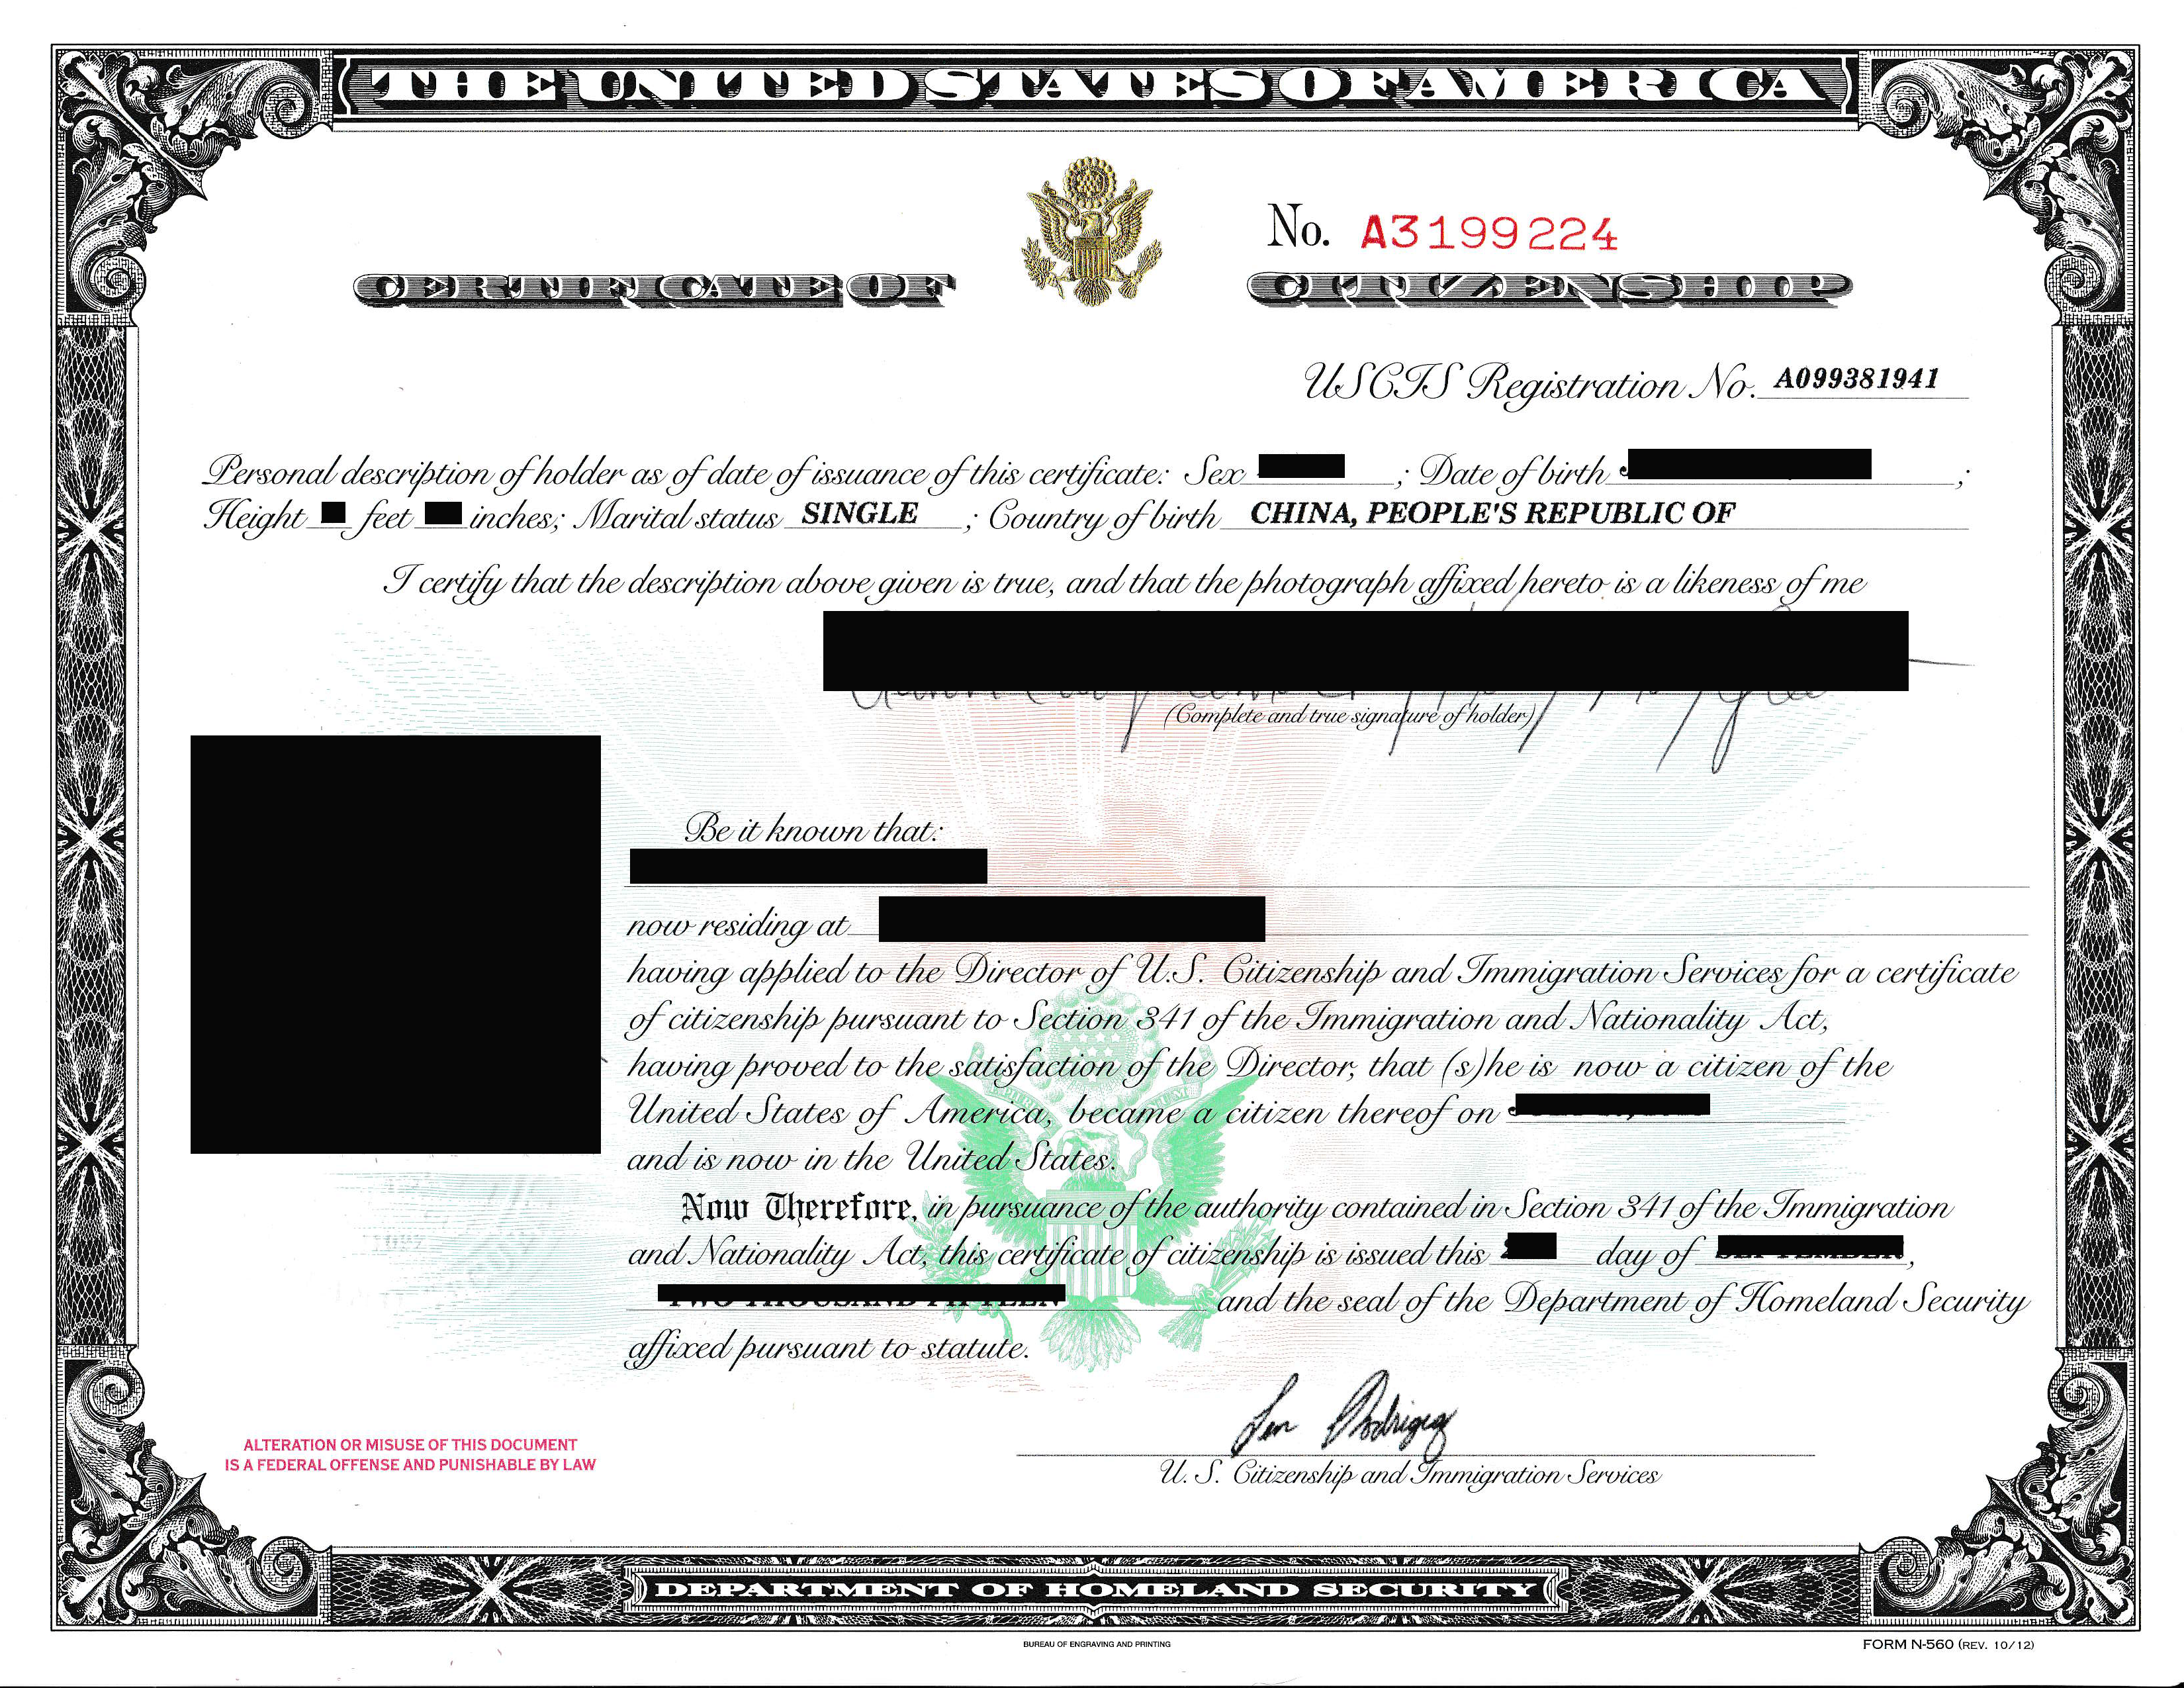 Post Adoption Documents And Reporting Ccai China